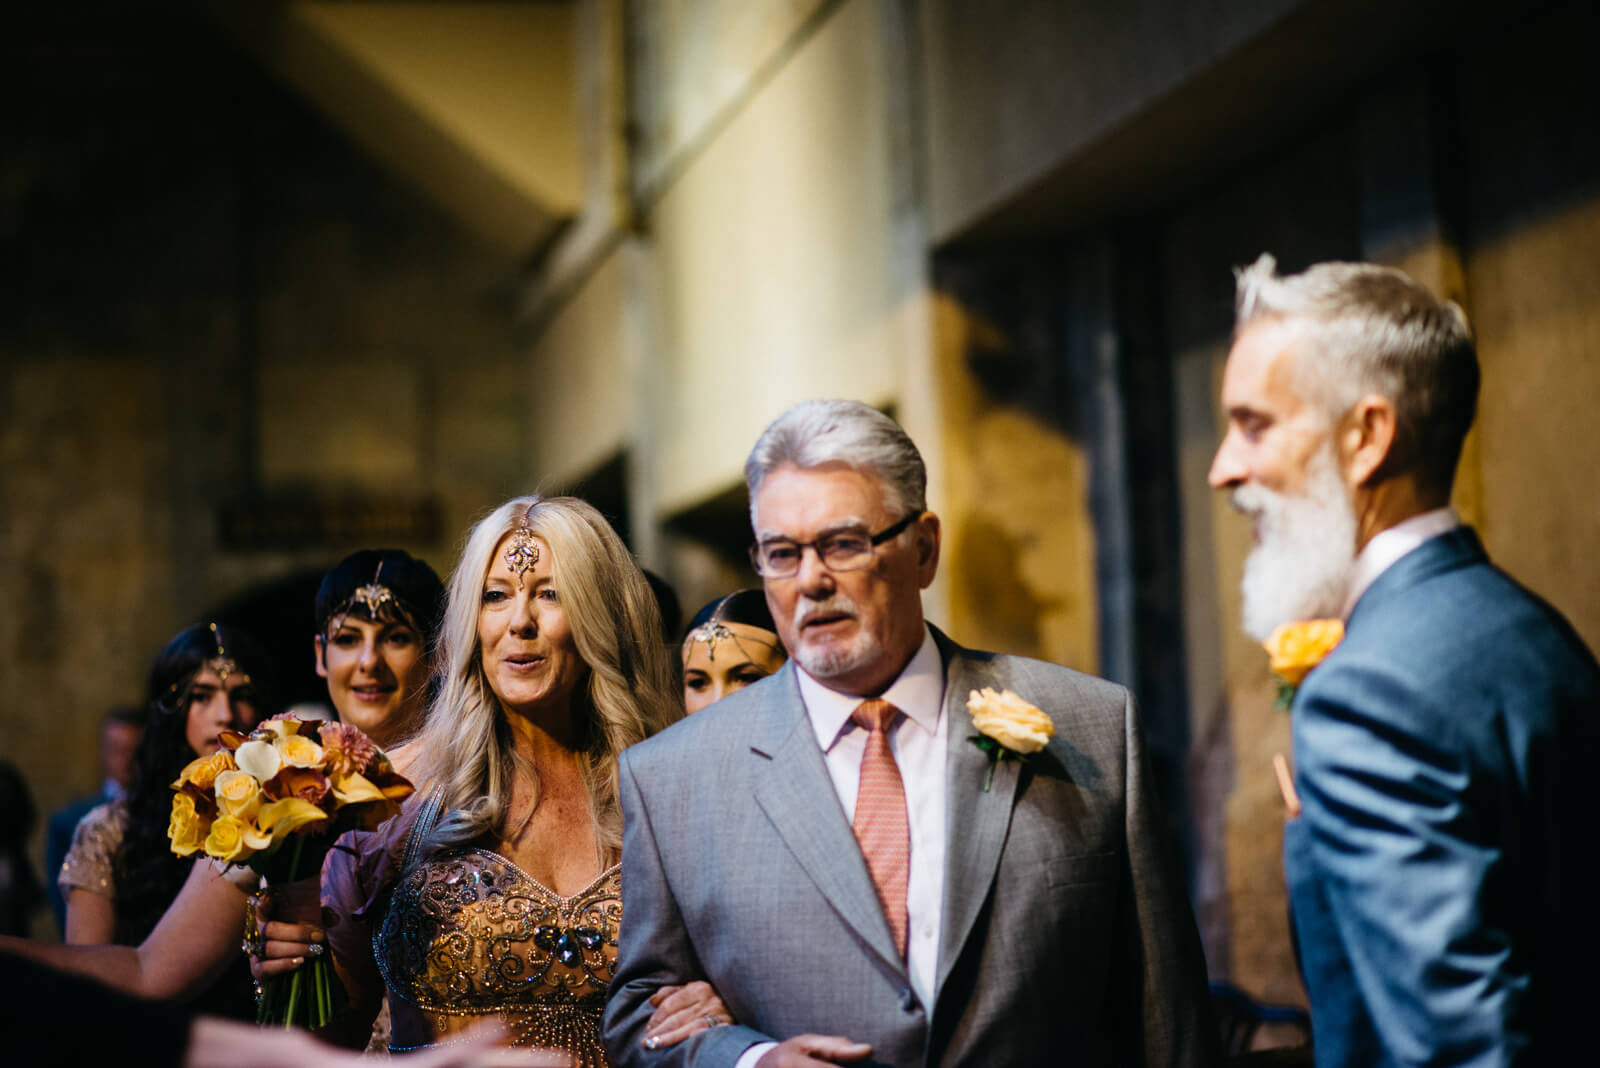 Stylish bride and her father arriving at stylish Bath Wedding ceremony at Roman Baths